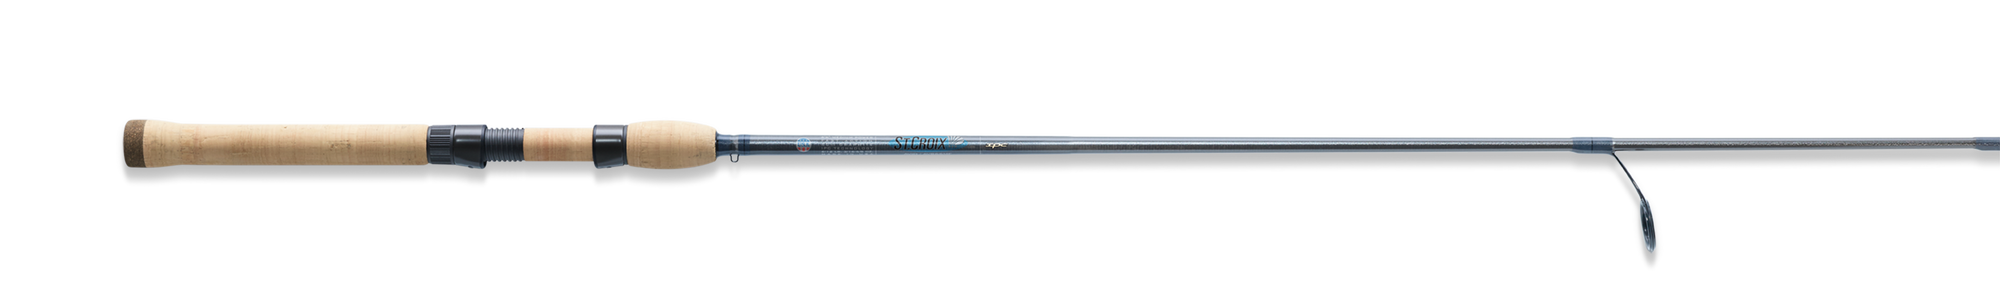 AVID SERIES® SPINNING ROD